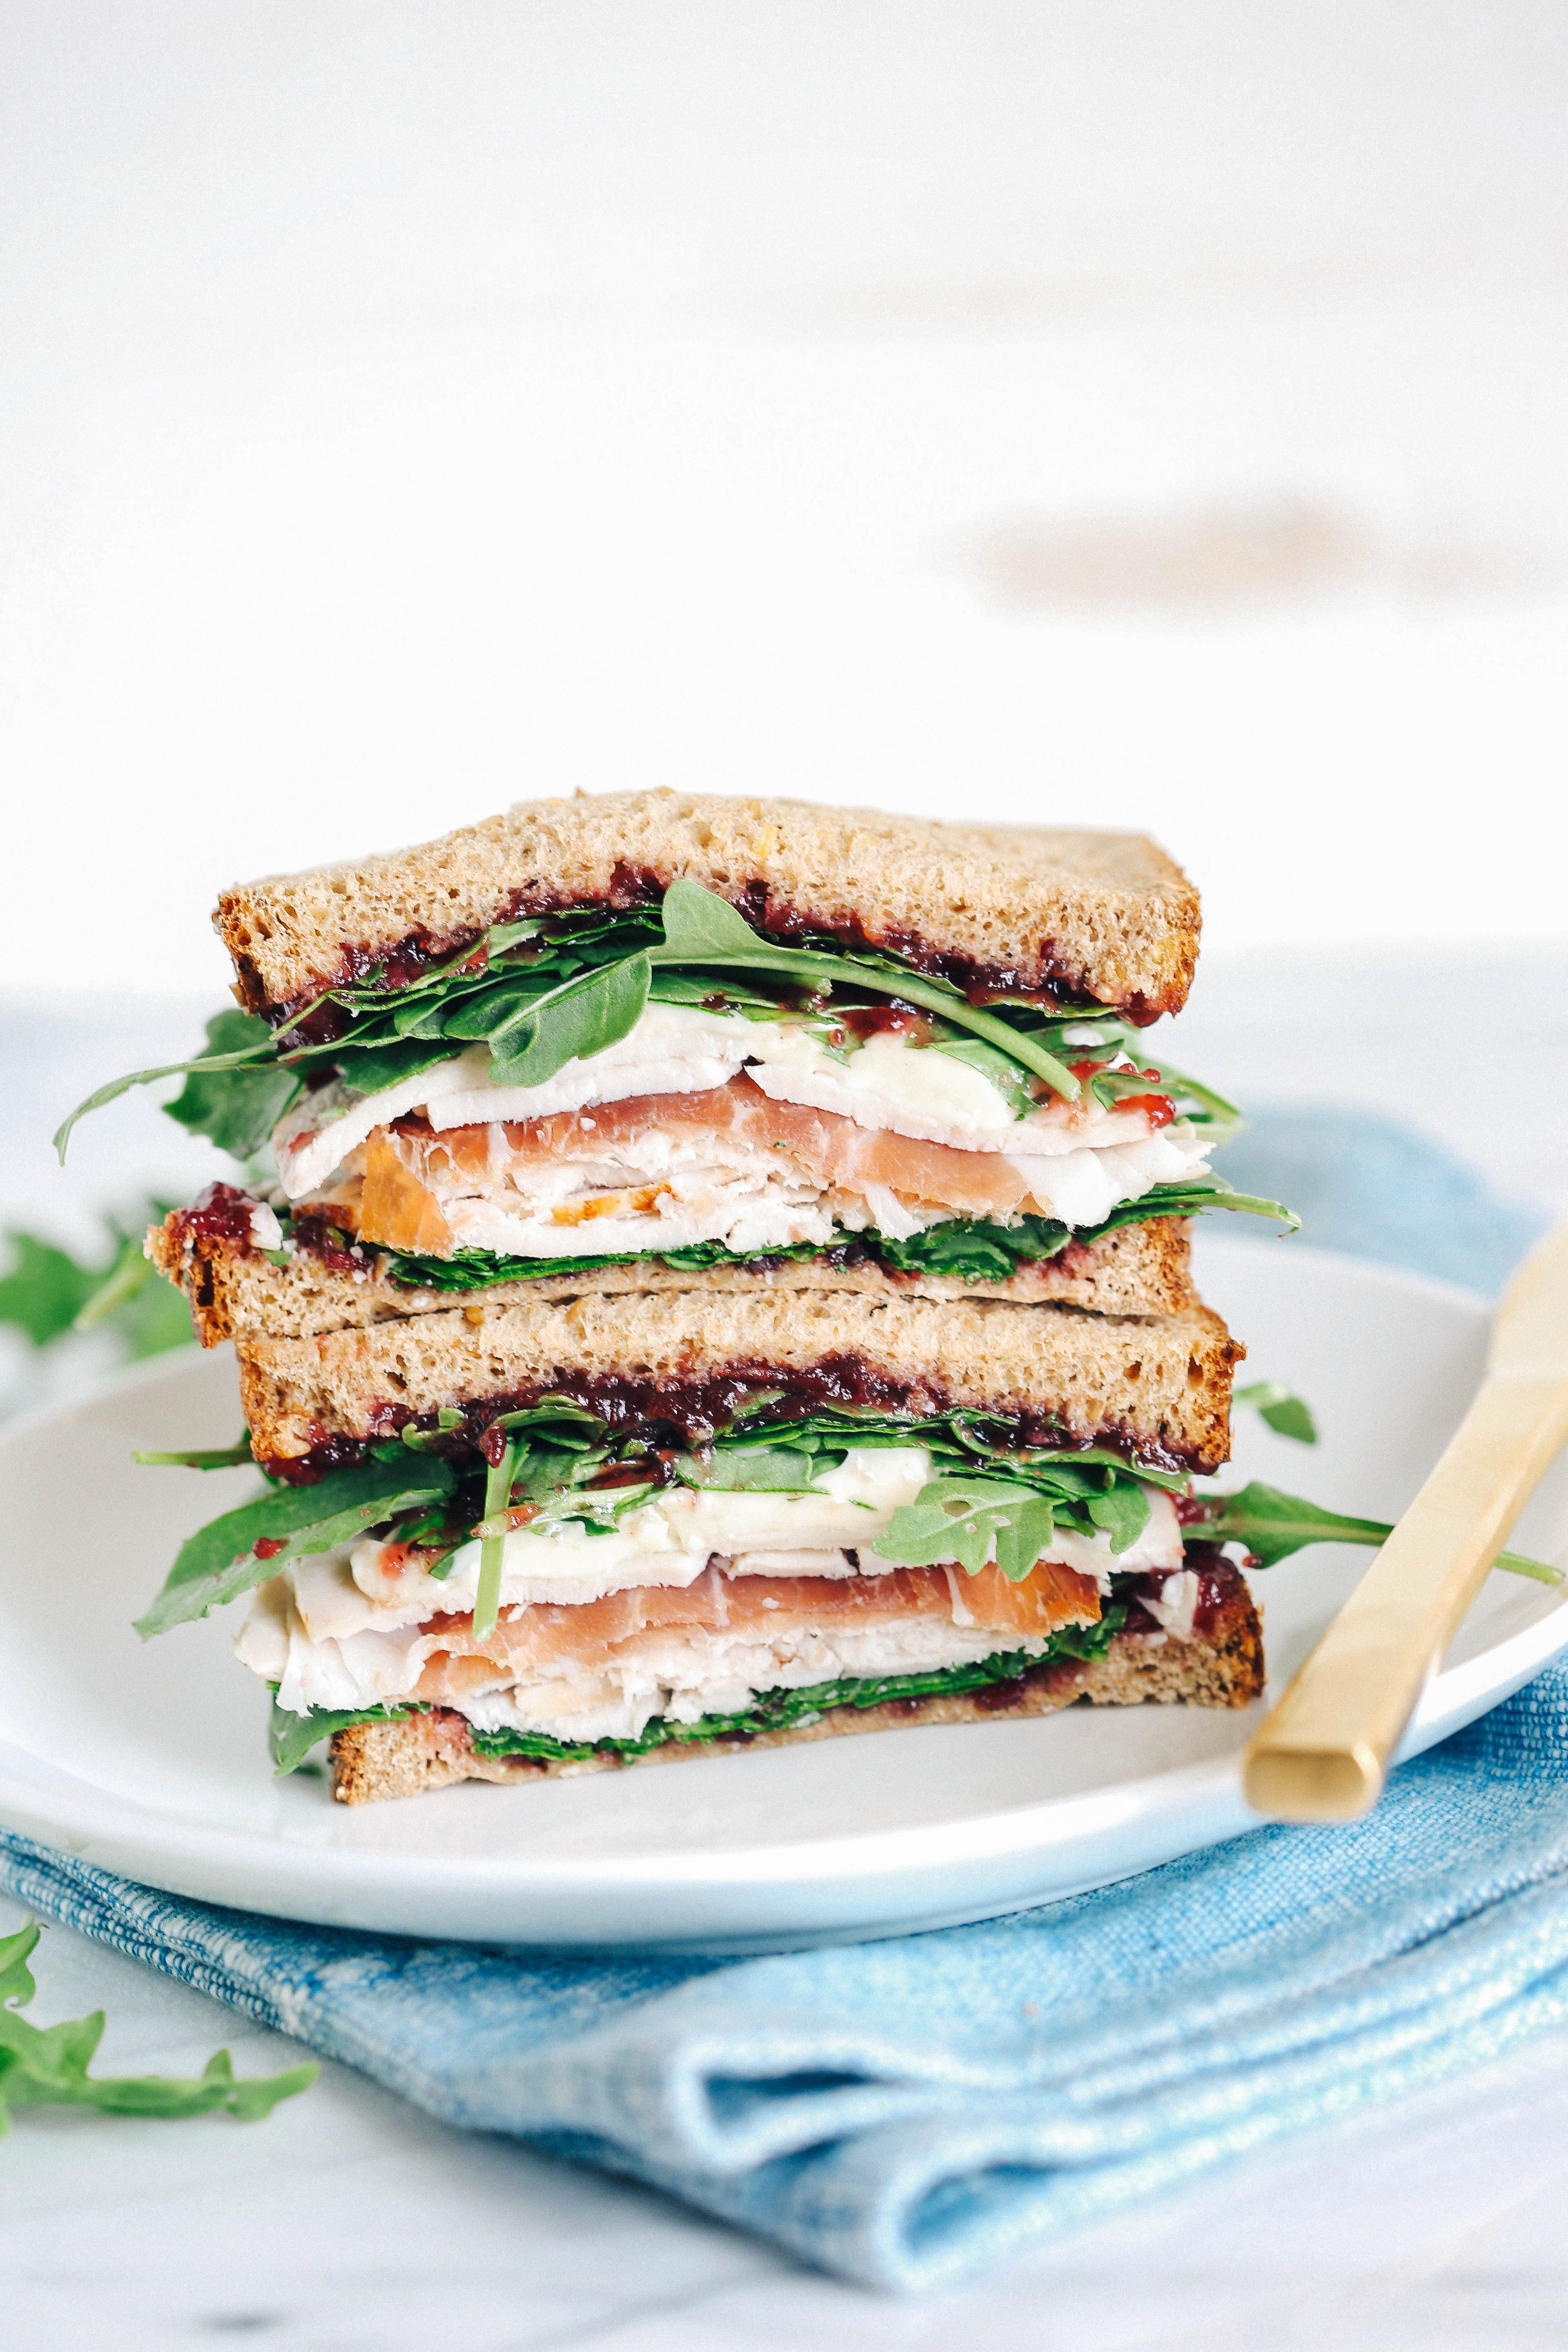 The ULTIMATE Thanksgiving leftover turkey sandwich elevated with delicious prosciutto, creamy brie and tangy cranberry sauce!